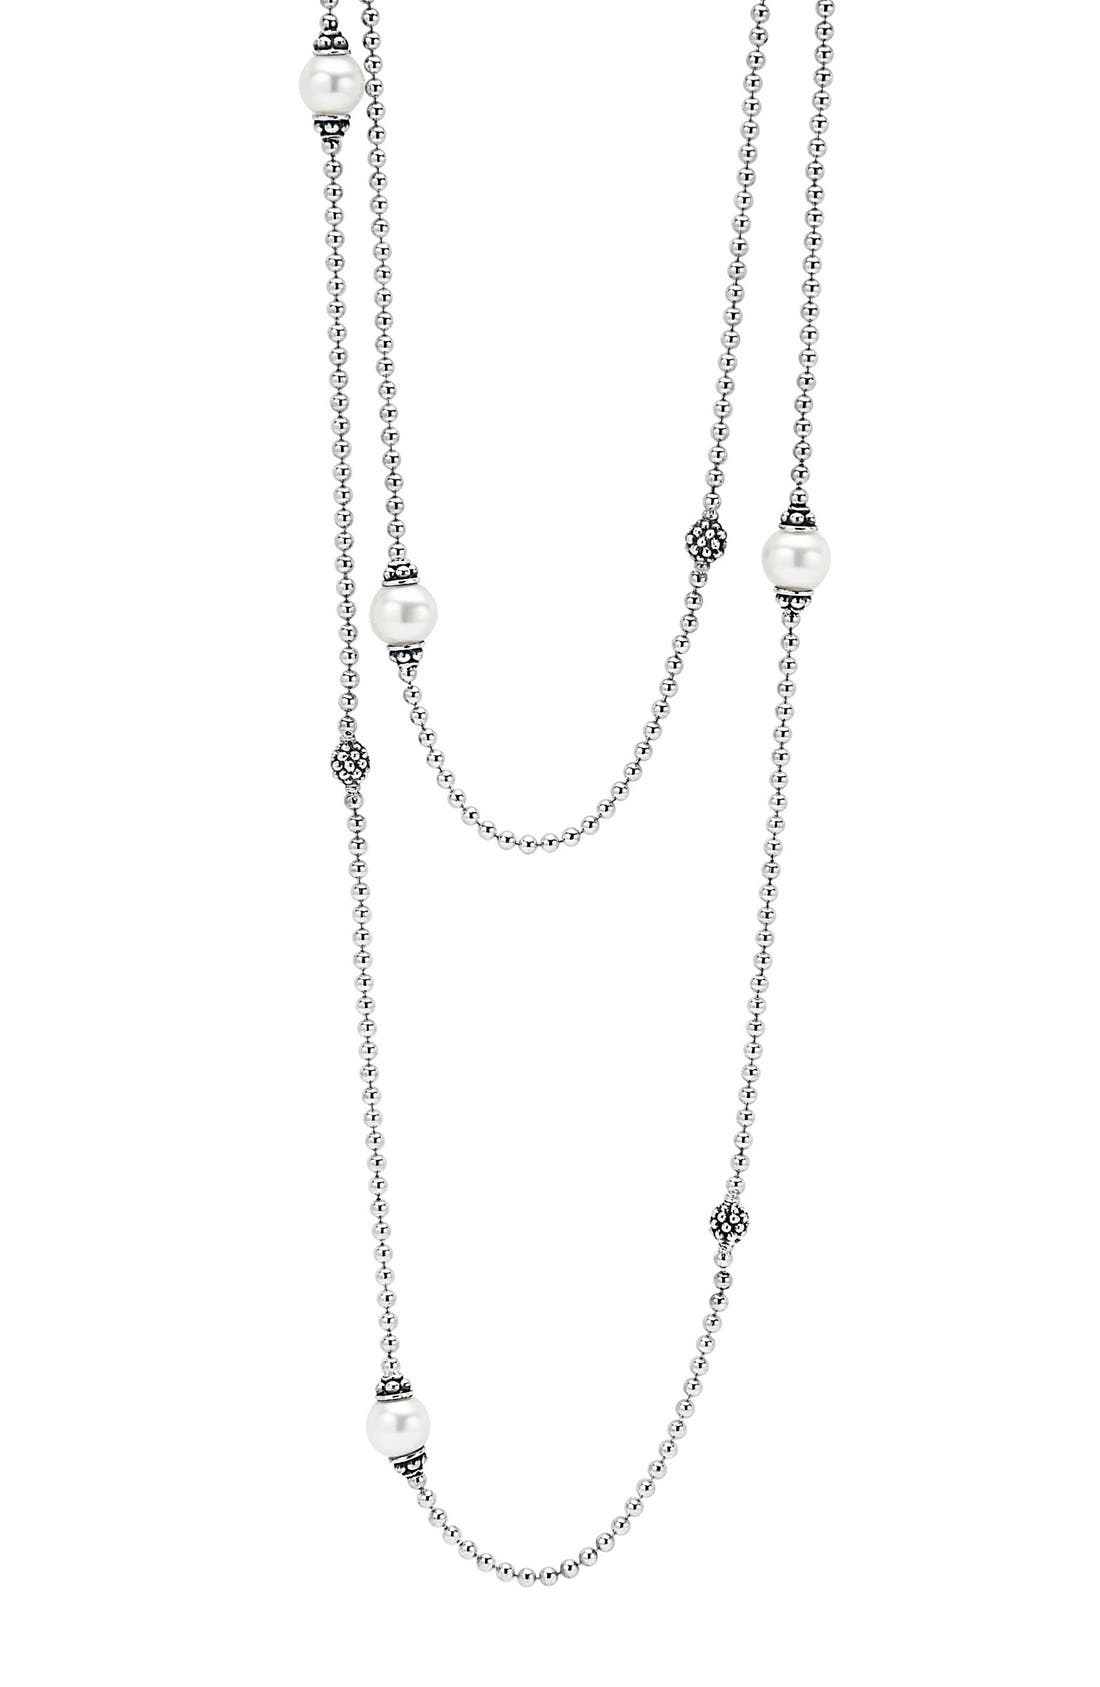 Alternate Image 1 Selected - LAGOS 'Luna' Double Strand Pearl Station Necklace